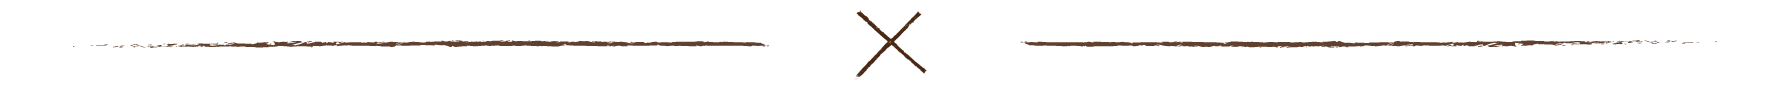 Bush Tannery_Cross Divider_v1.png